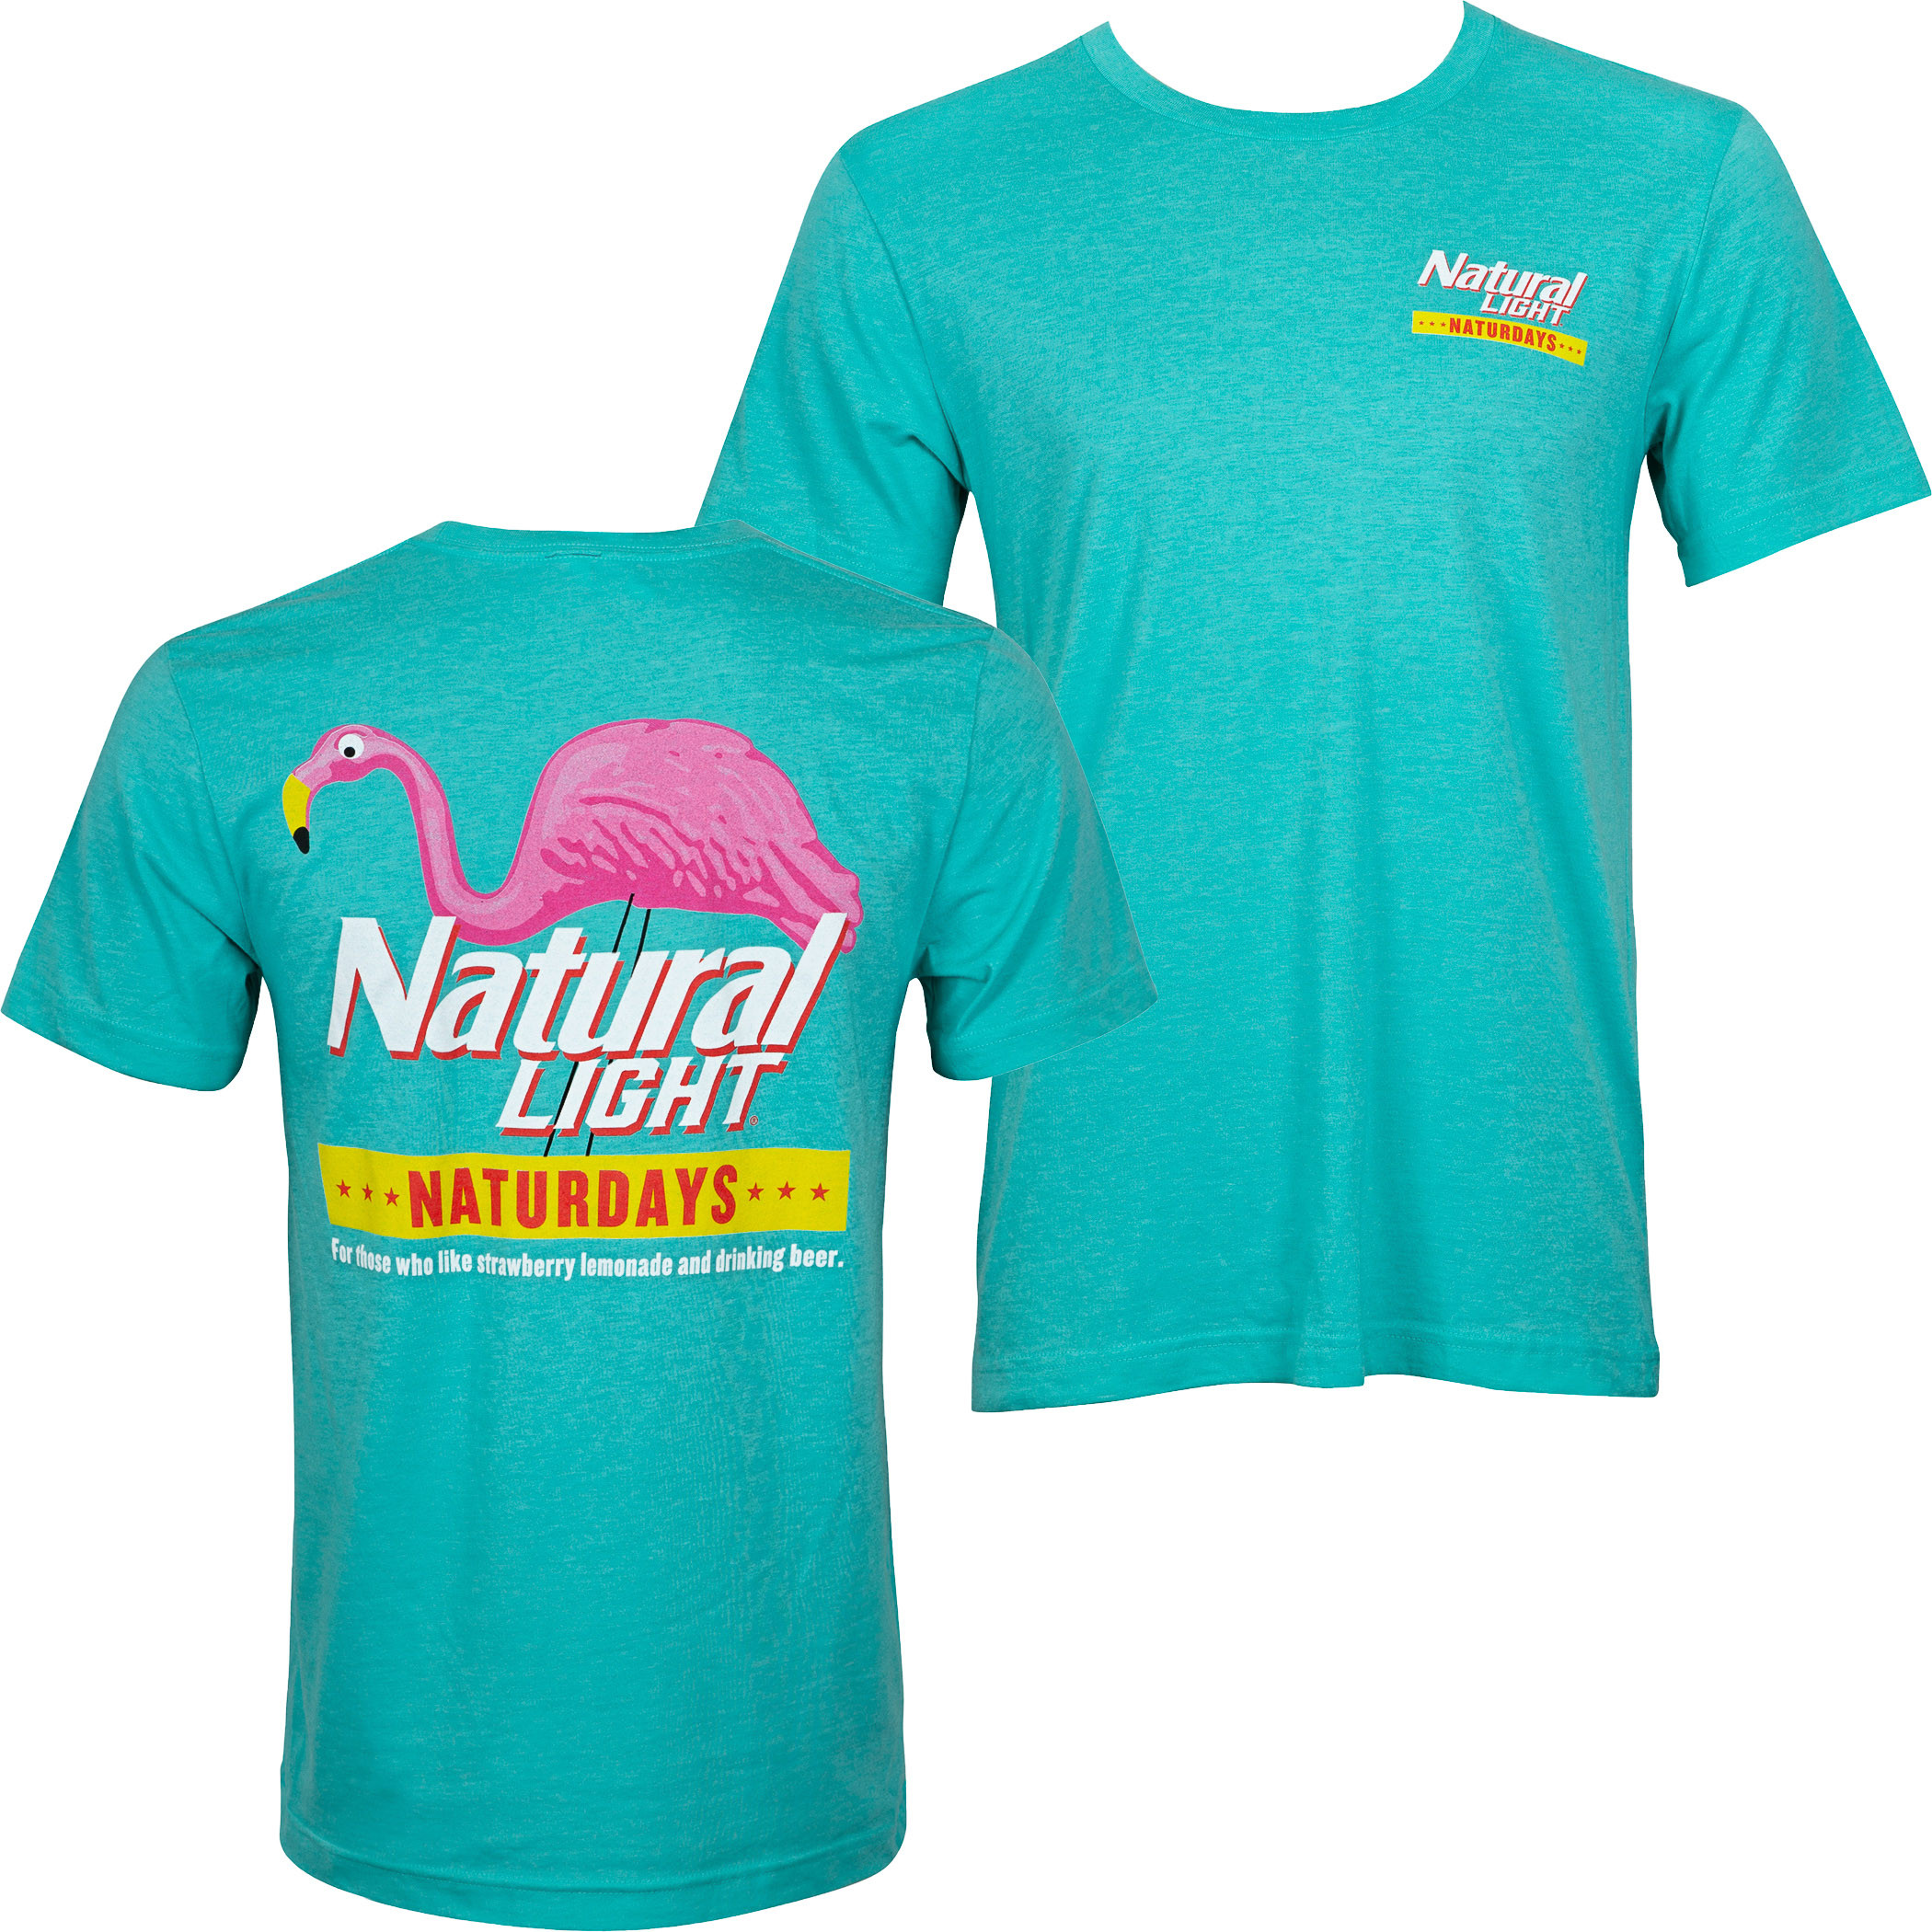 Natty Naturdays Green Natural Light Men's Tee Shirt